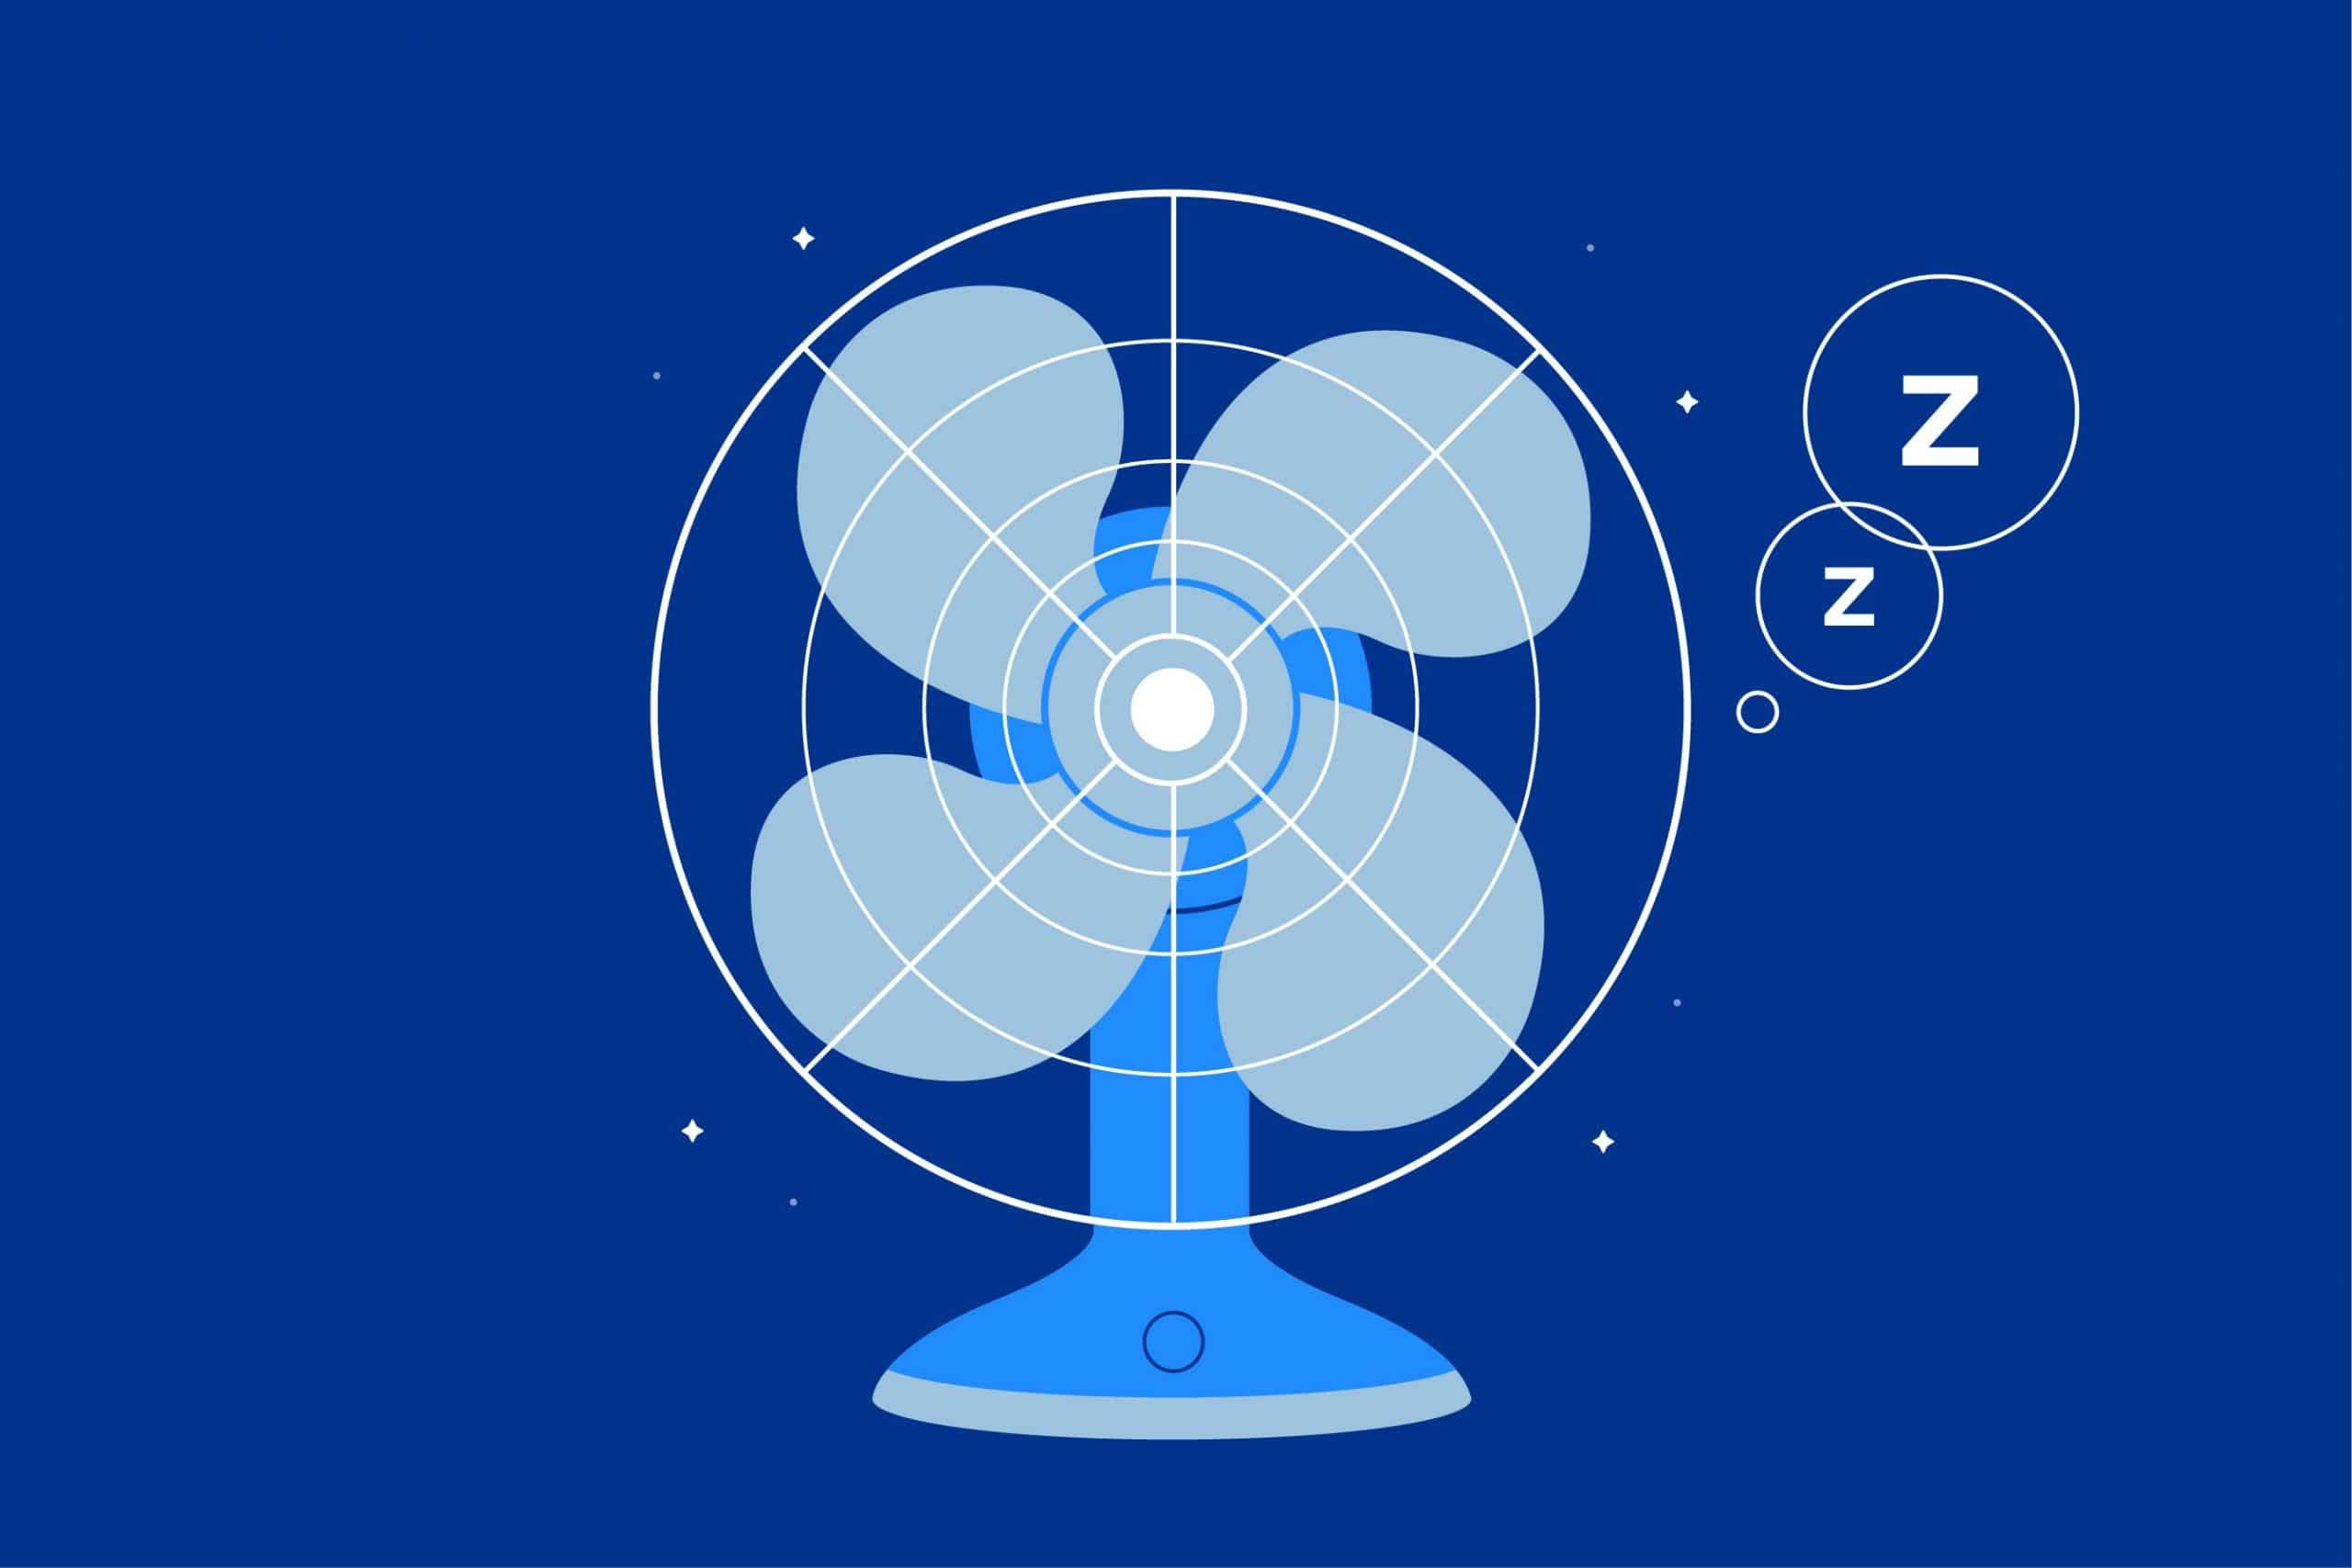 Is Sleeping With A Fan On Bad For Health?